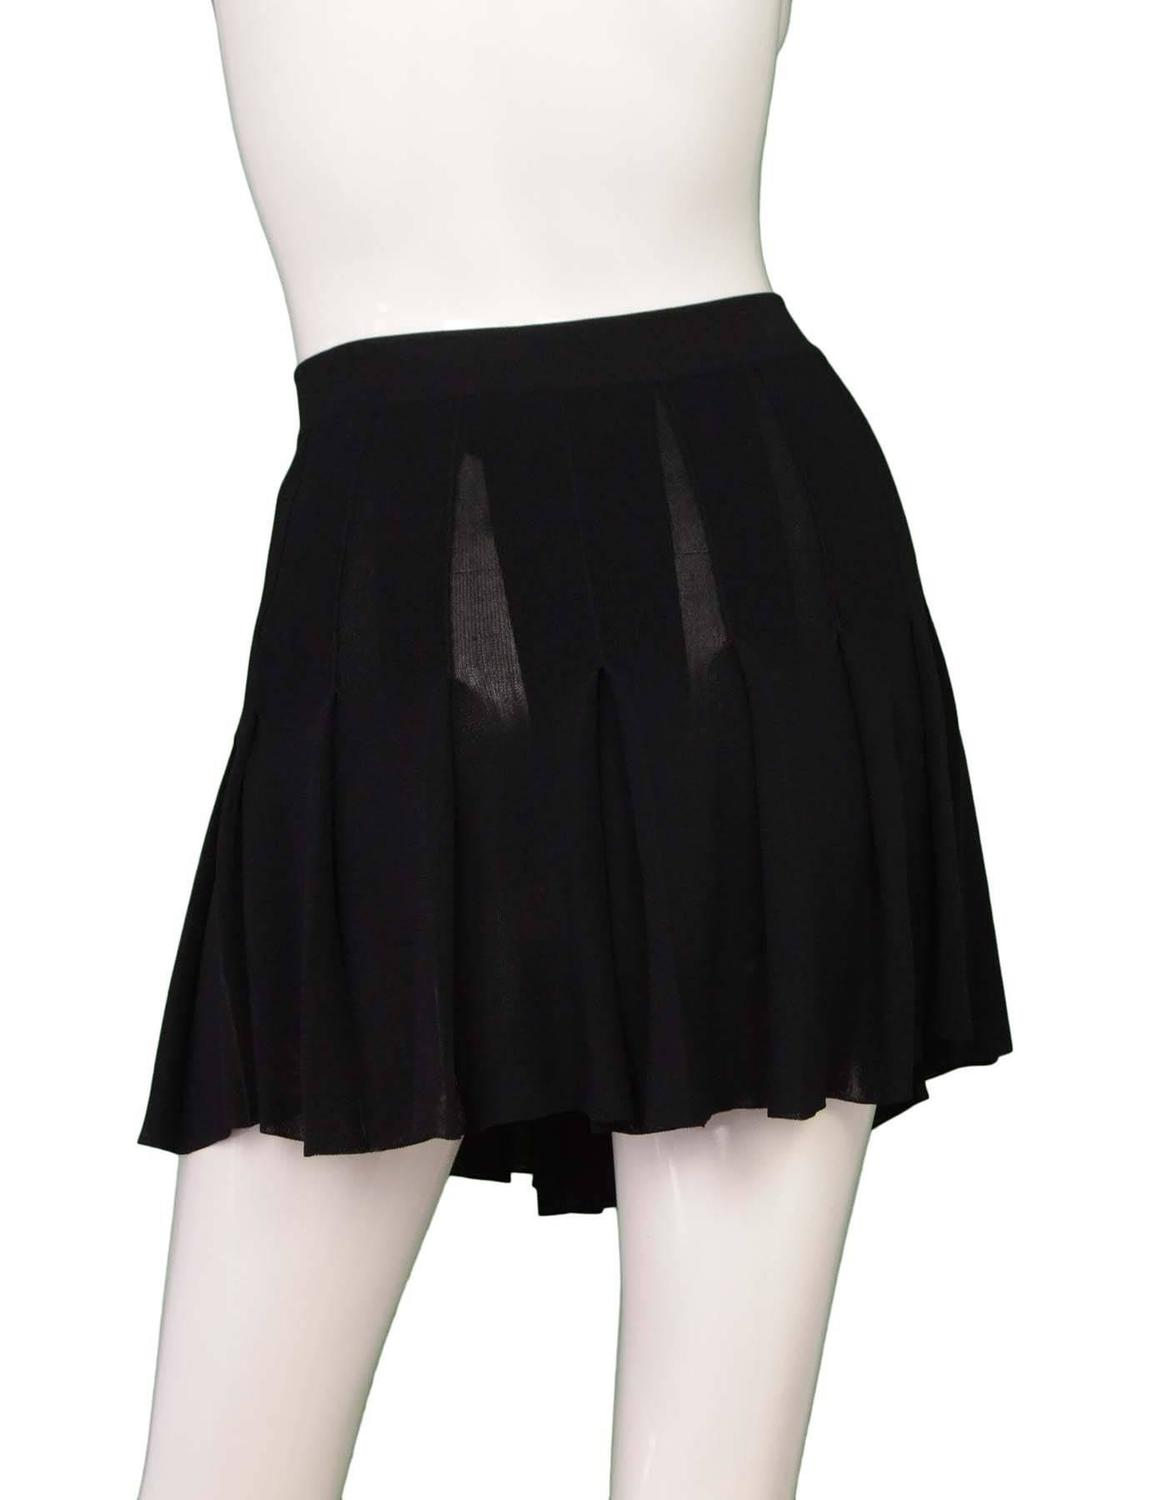 Buy the latest short mini skirts for sale cheap shop fashion style with free shipping, and check out our daily updated new arrival short mini skirts for sale at shopnow-bqimqrqk.tk